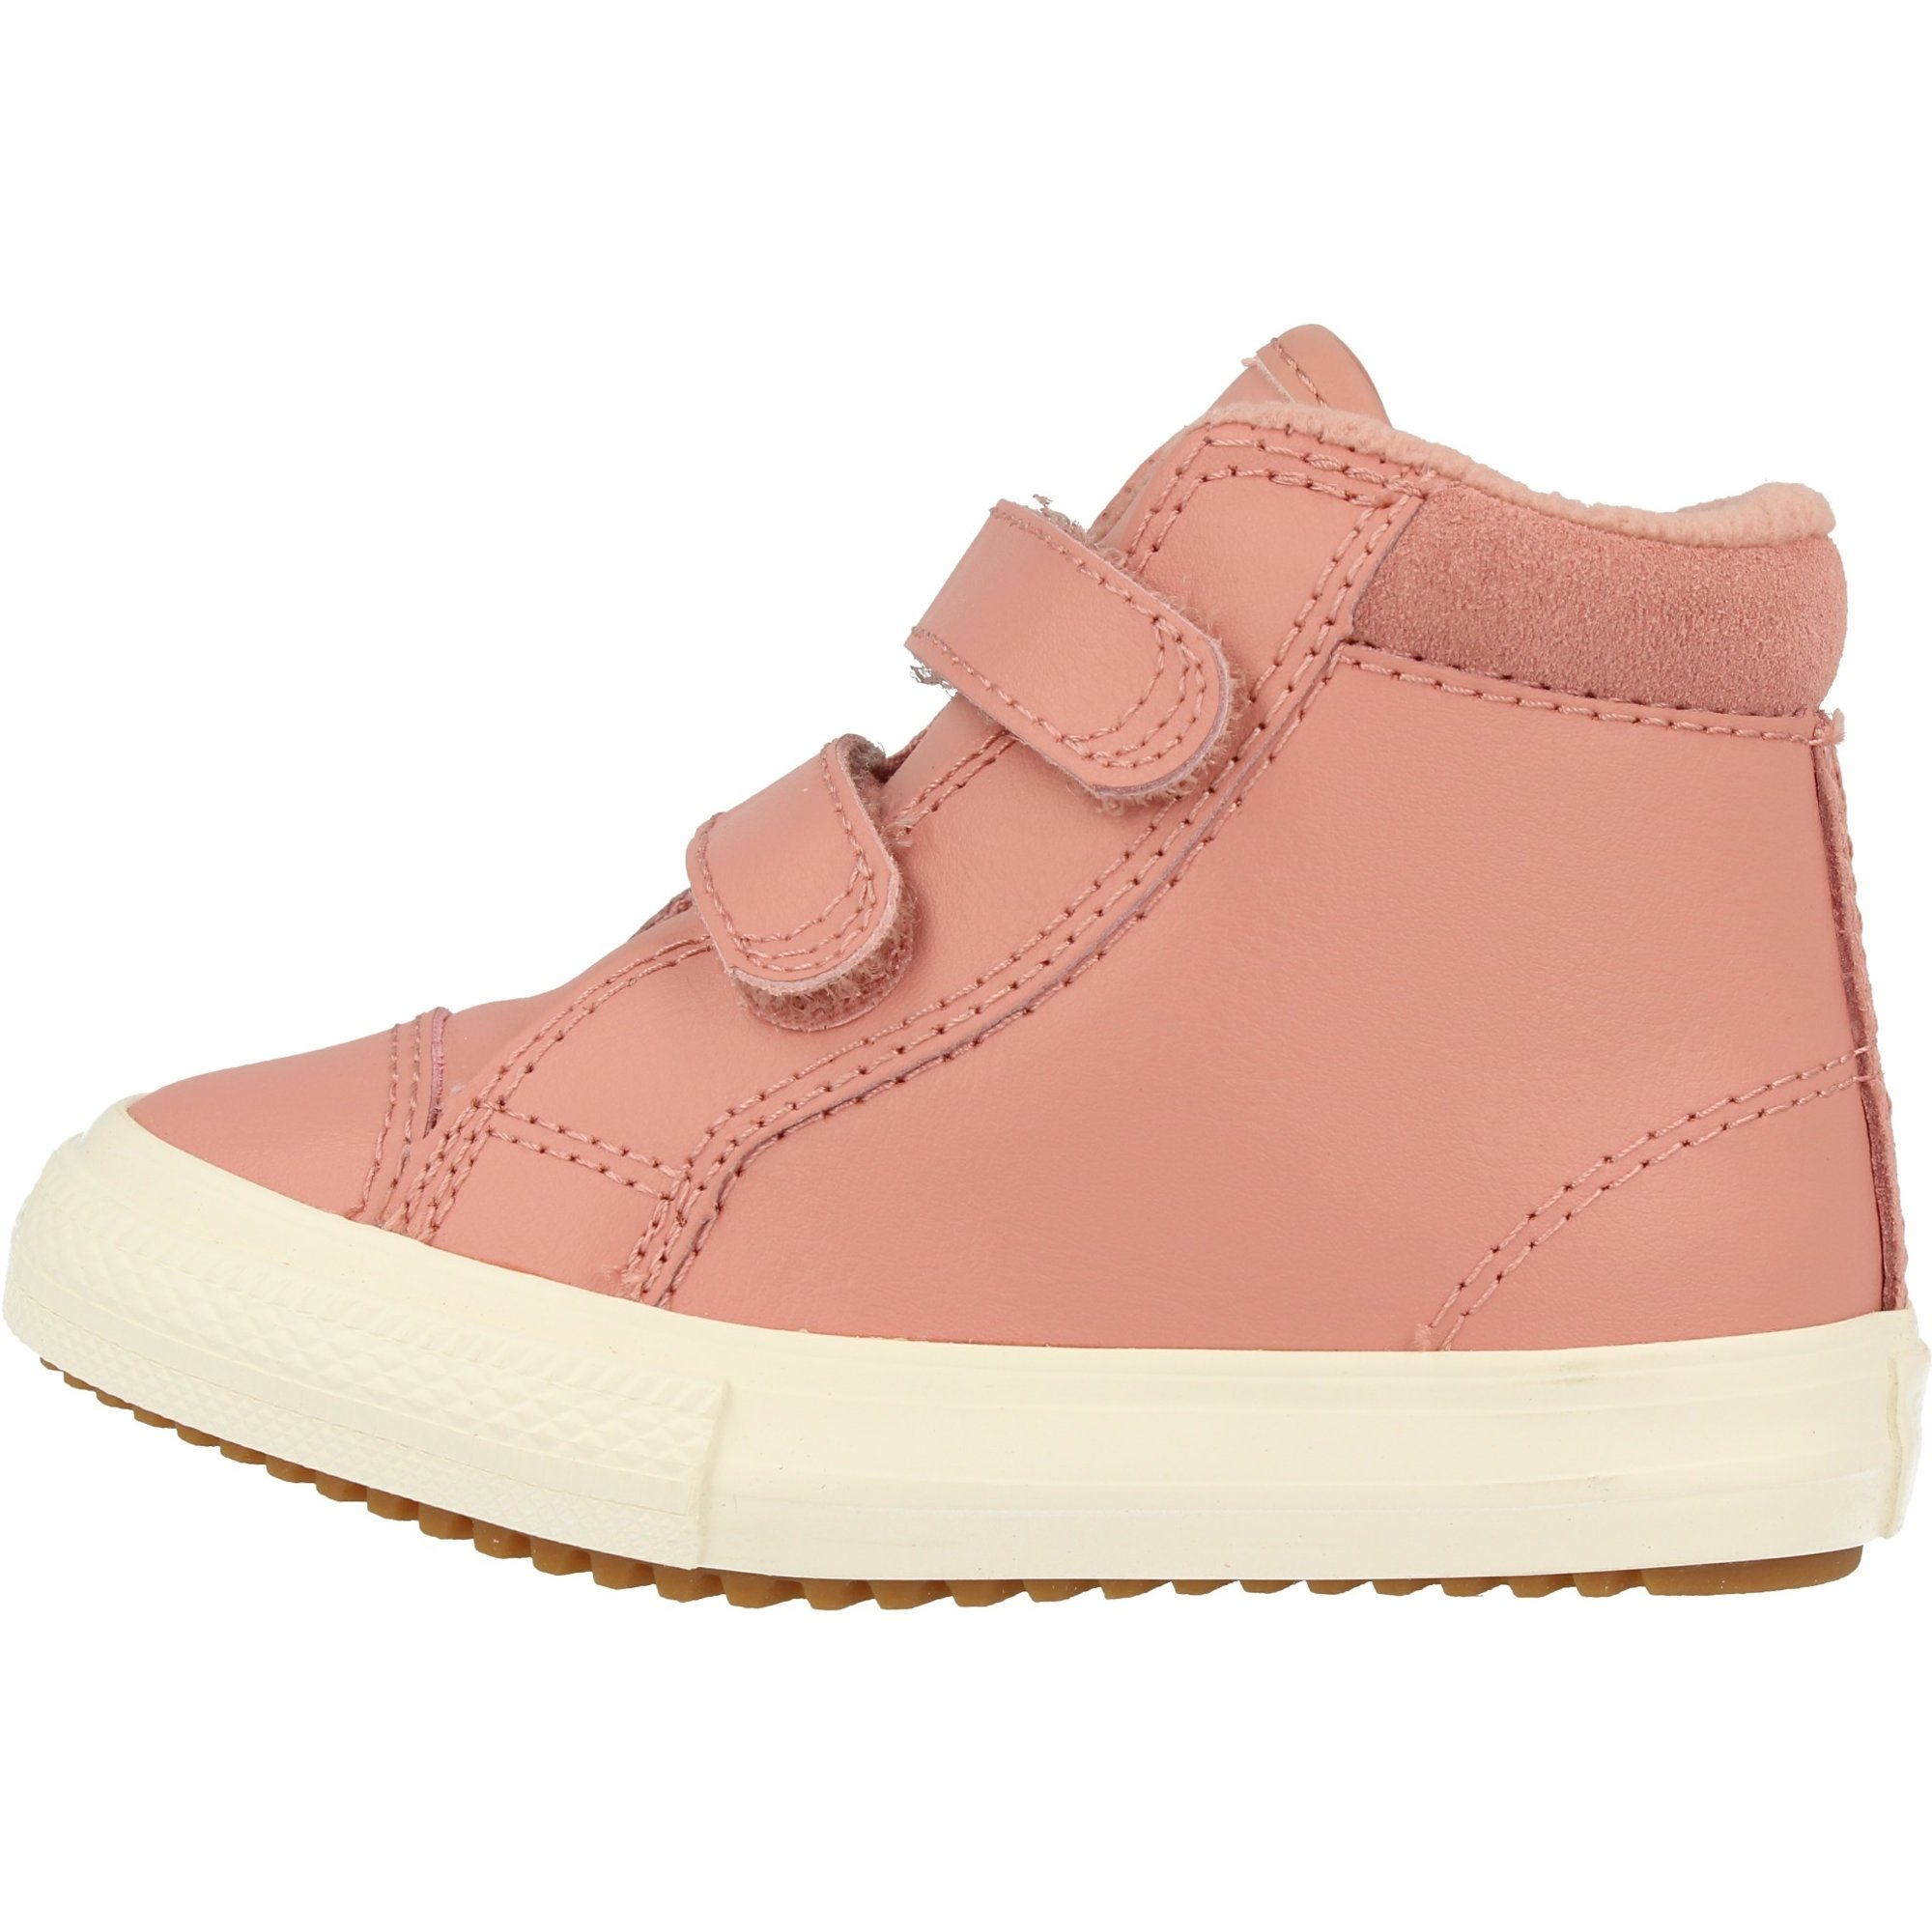 Converse Chuck Taylor All Star 2V PC Boot Hi Rust Pink Leather Baby